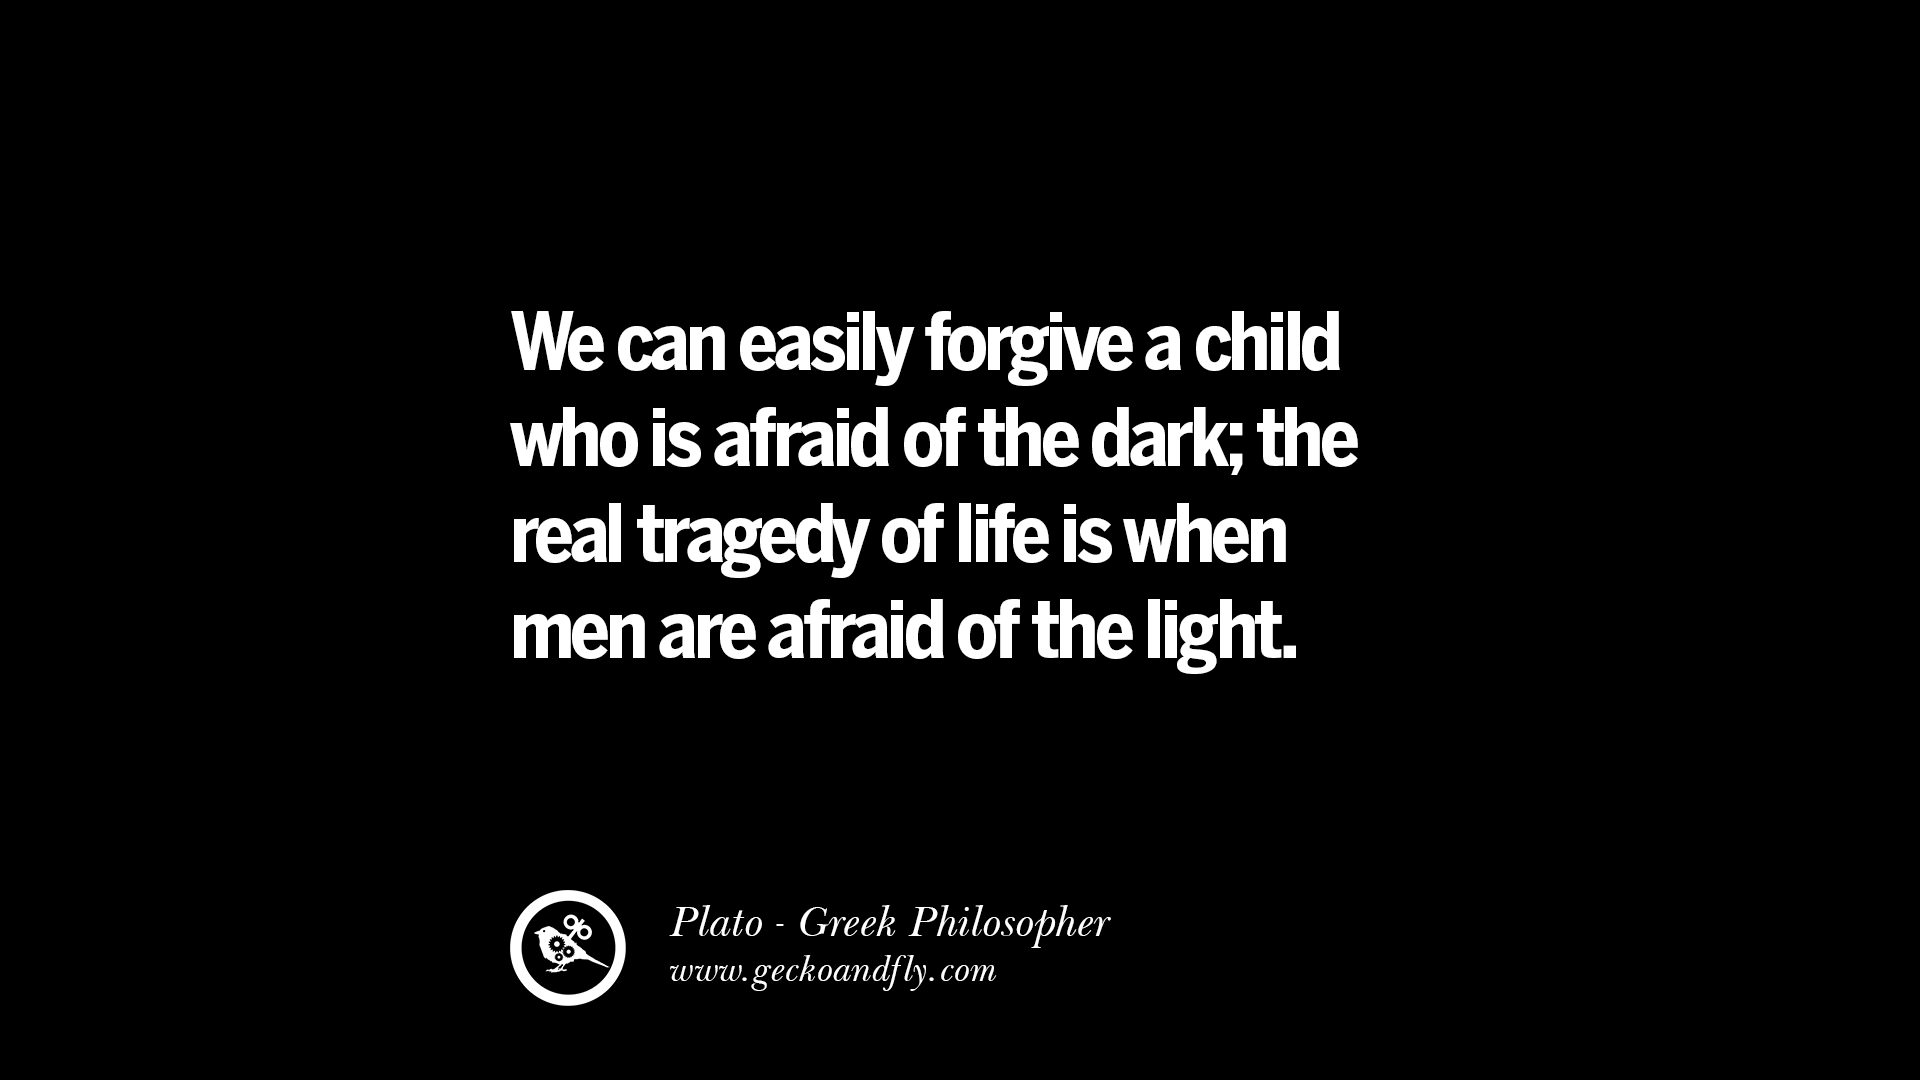 We can easily forgive a child who is afraid of the dark the real tragedy of life is when men are afraid of the light – Plato